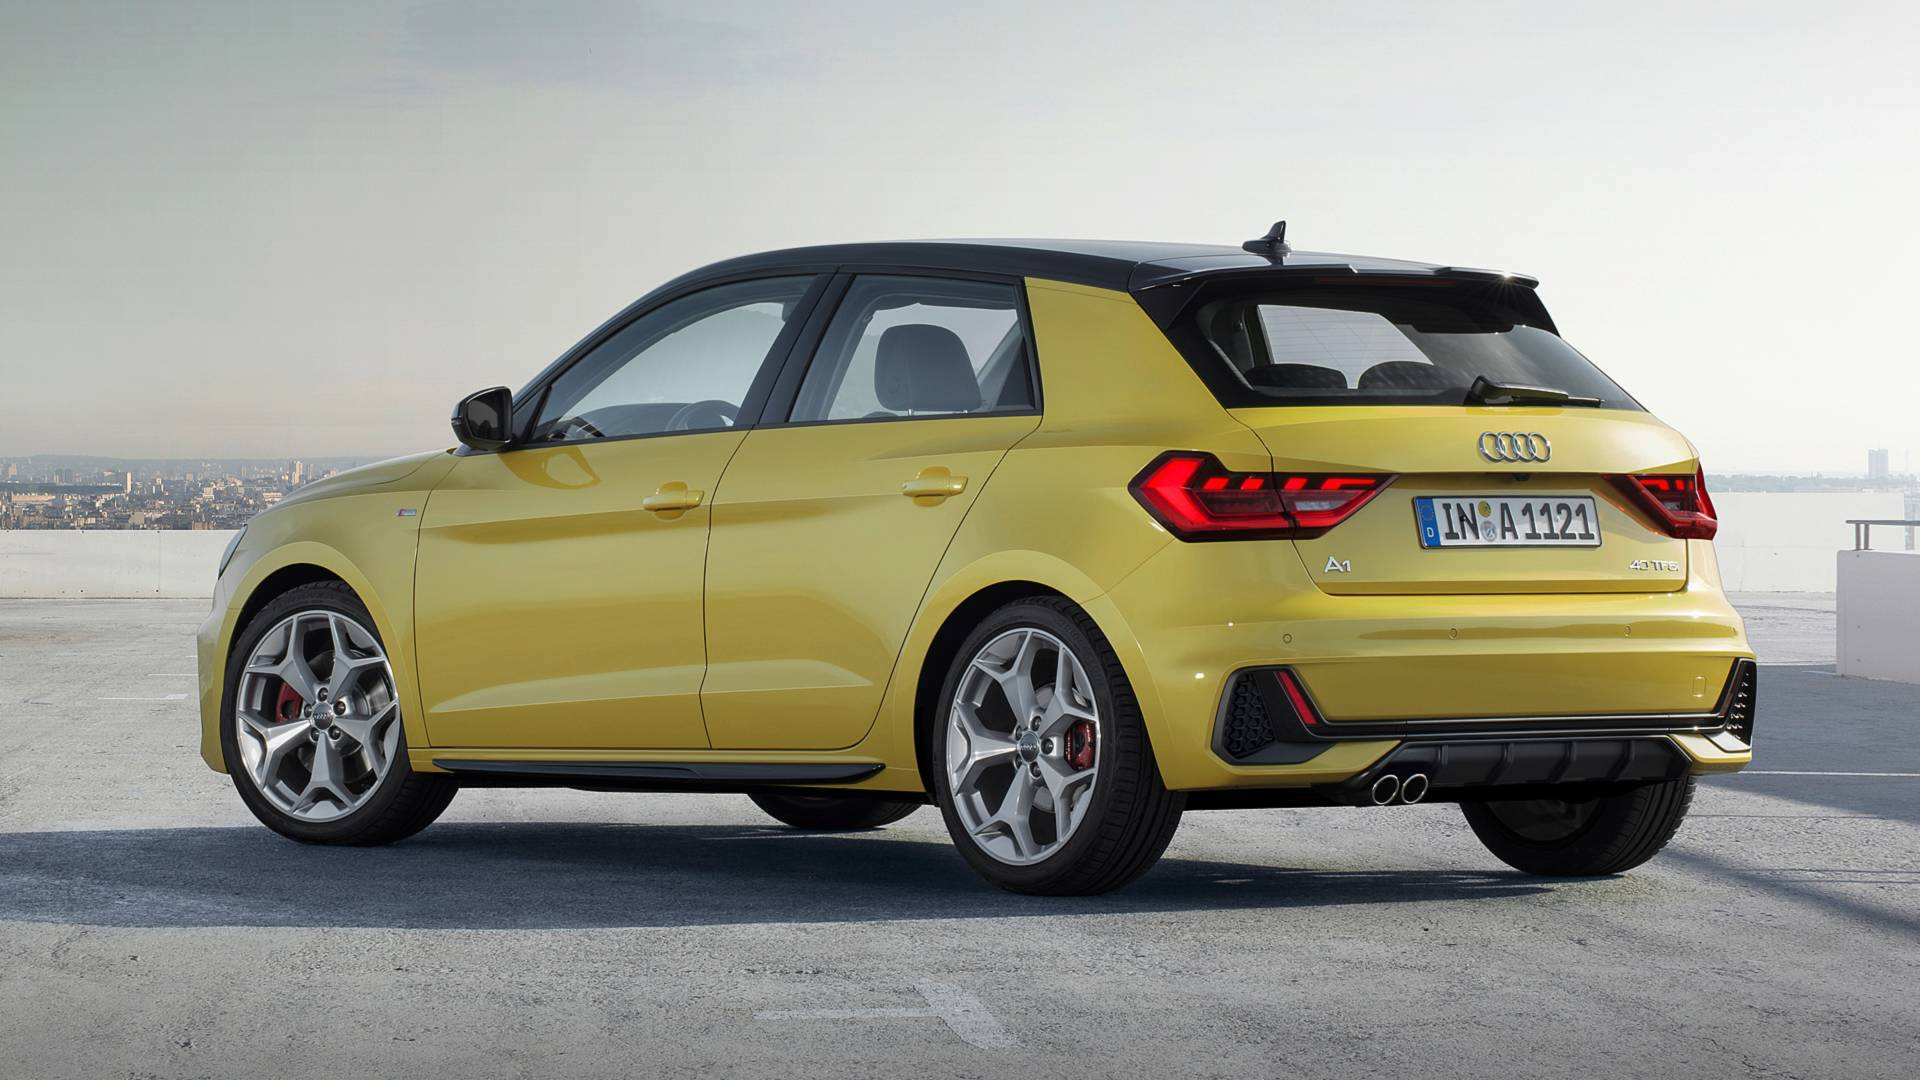 85 Concept of S1 Audi 2019 New Review Exterior for S1 Audi 2019 New Review